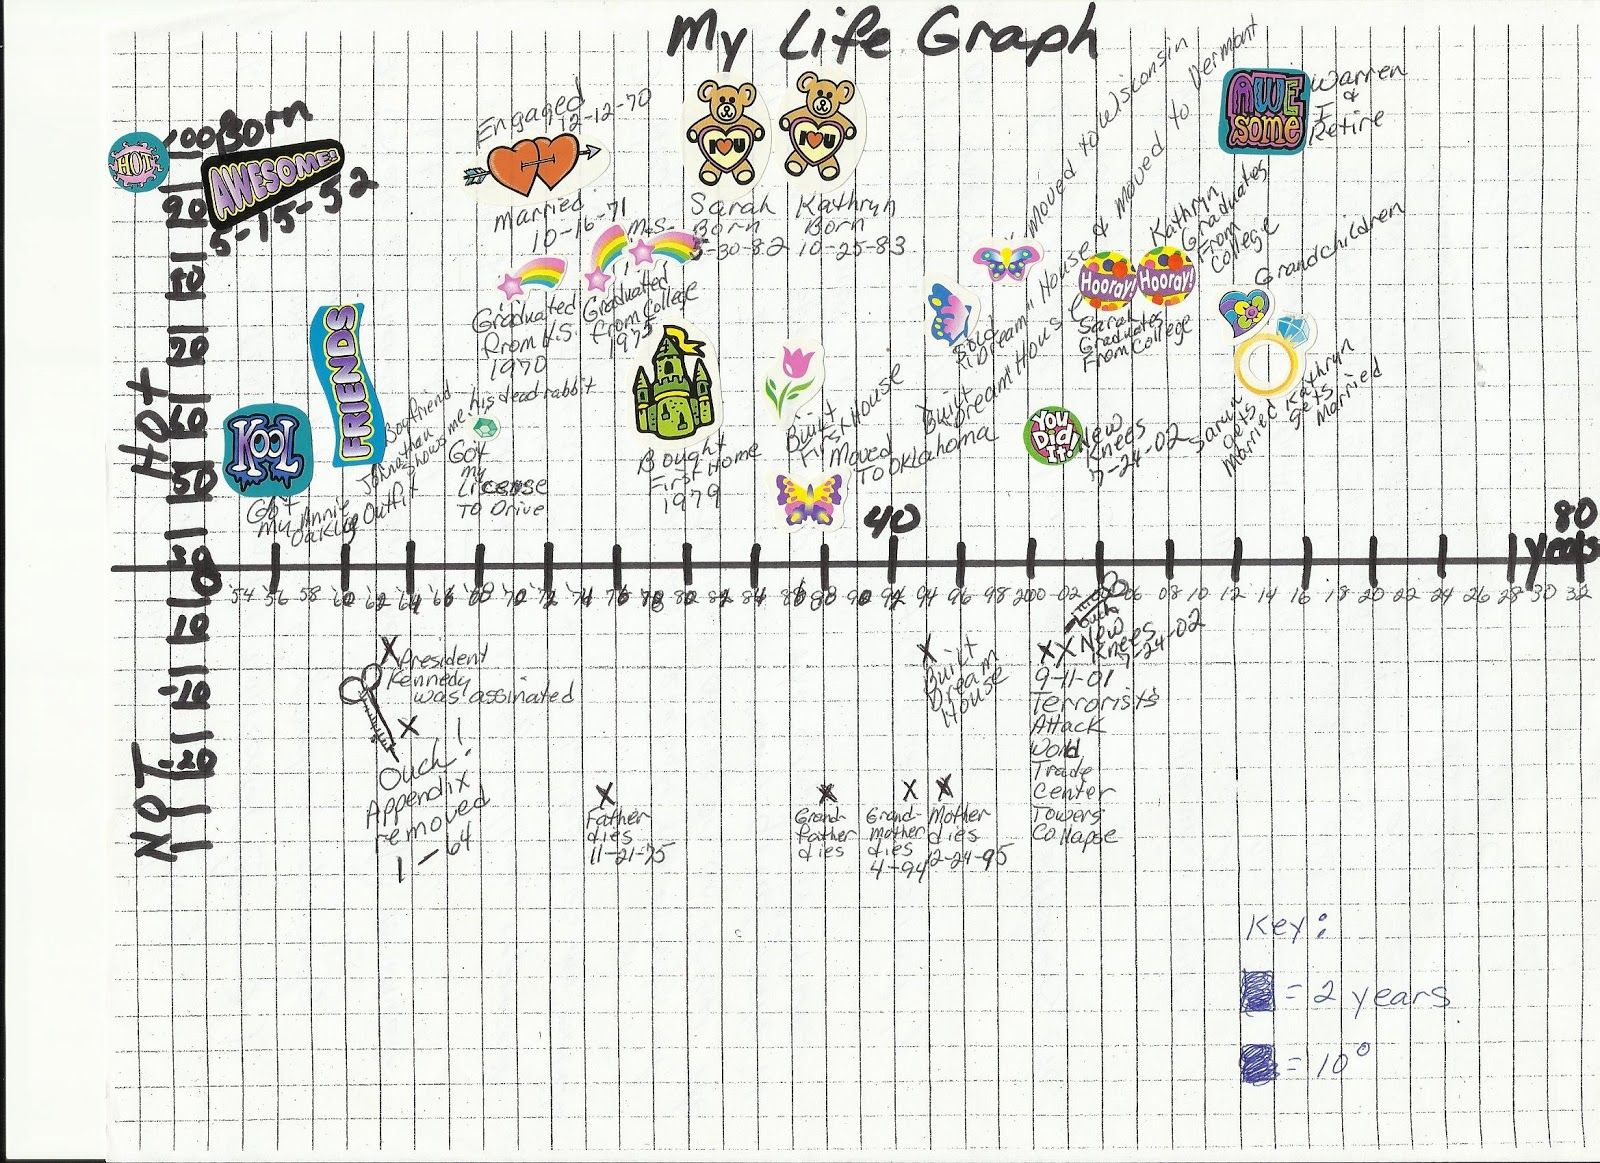 Personal Life Timeline Template